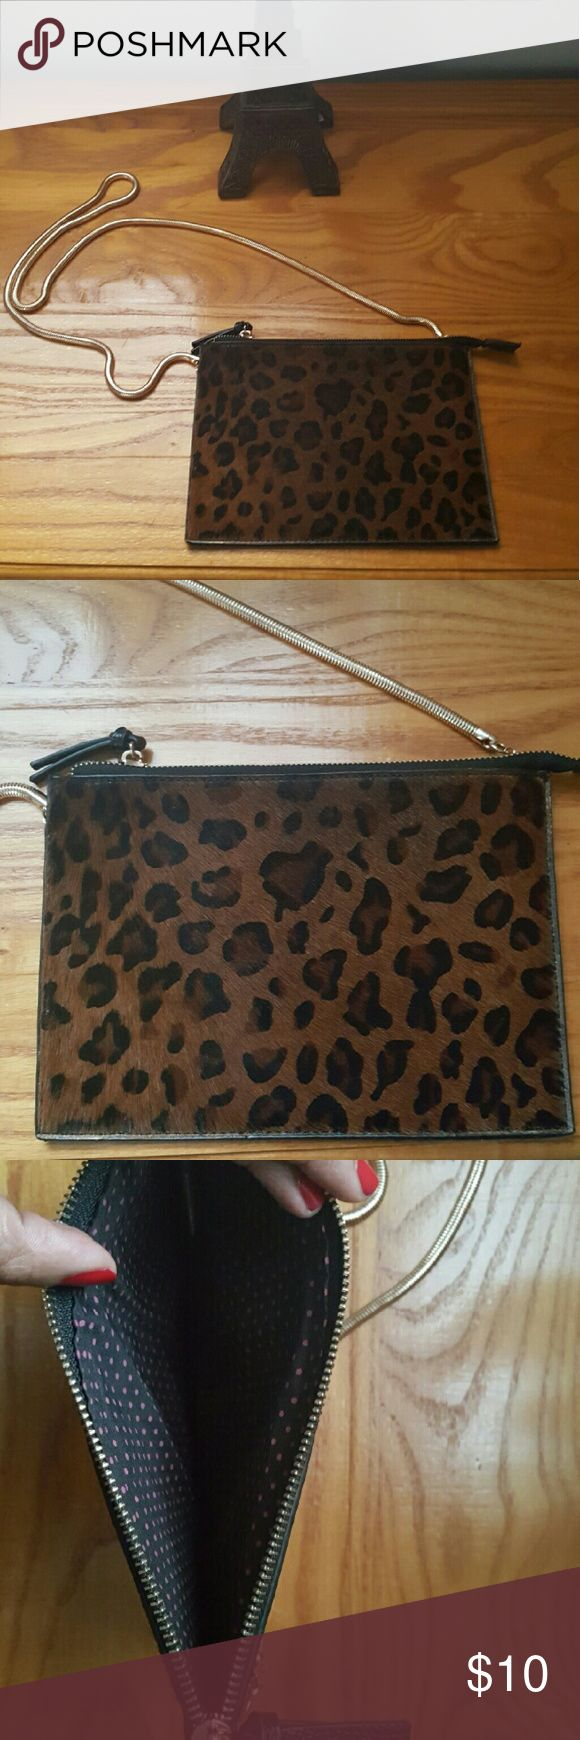 Animal print shoulder bag Lightly used animal print purse no signs of wear it's in great condition Bags Shoulder Bags